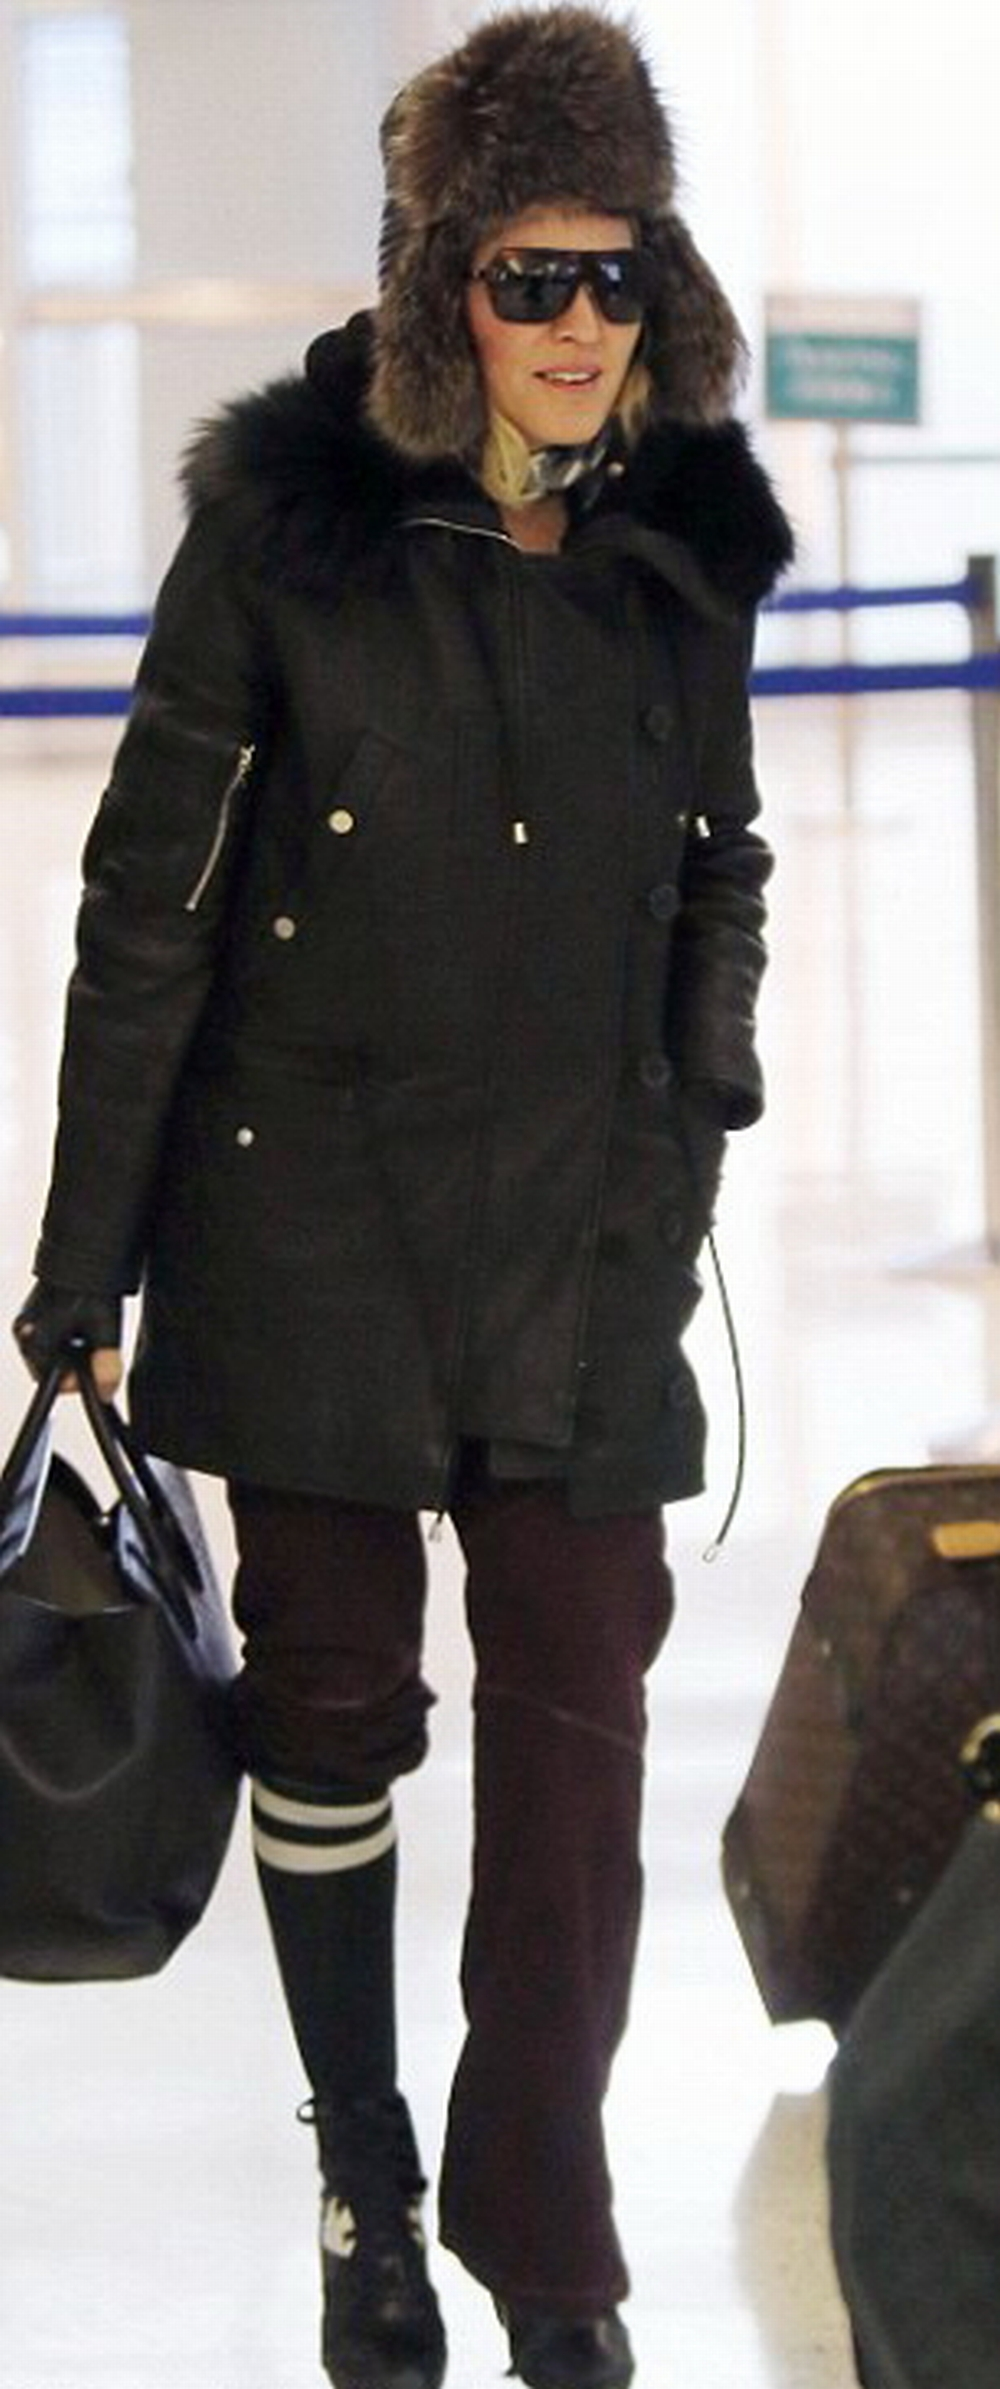 Madonna at JFK airport, New York - 1 February 2015 - Pictures (2)